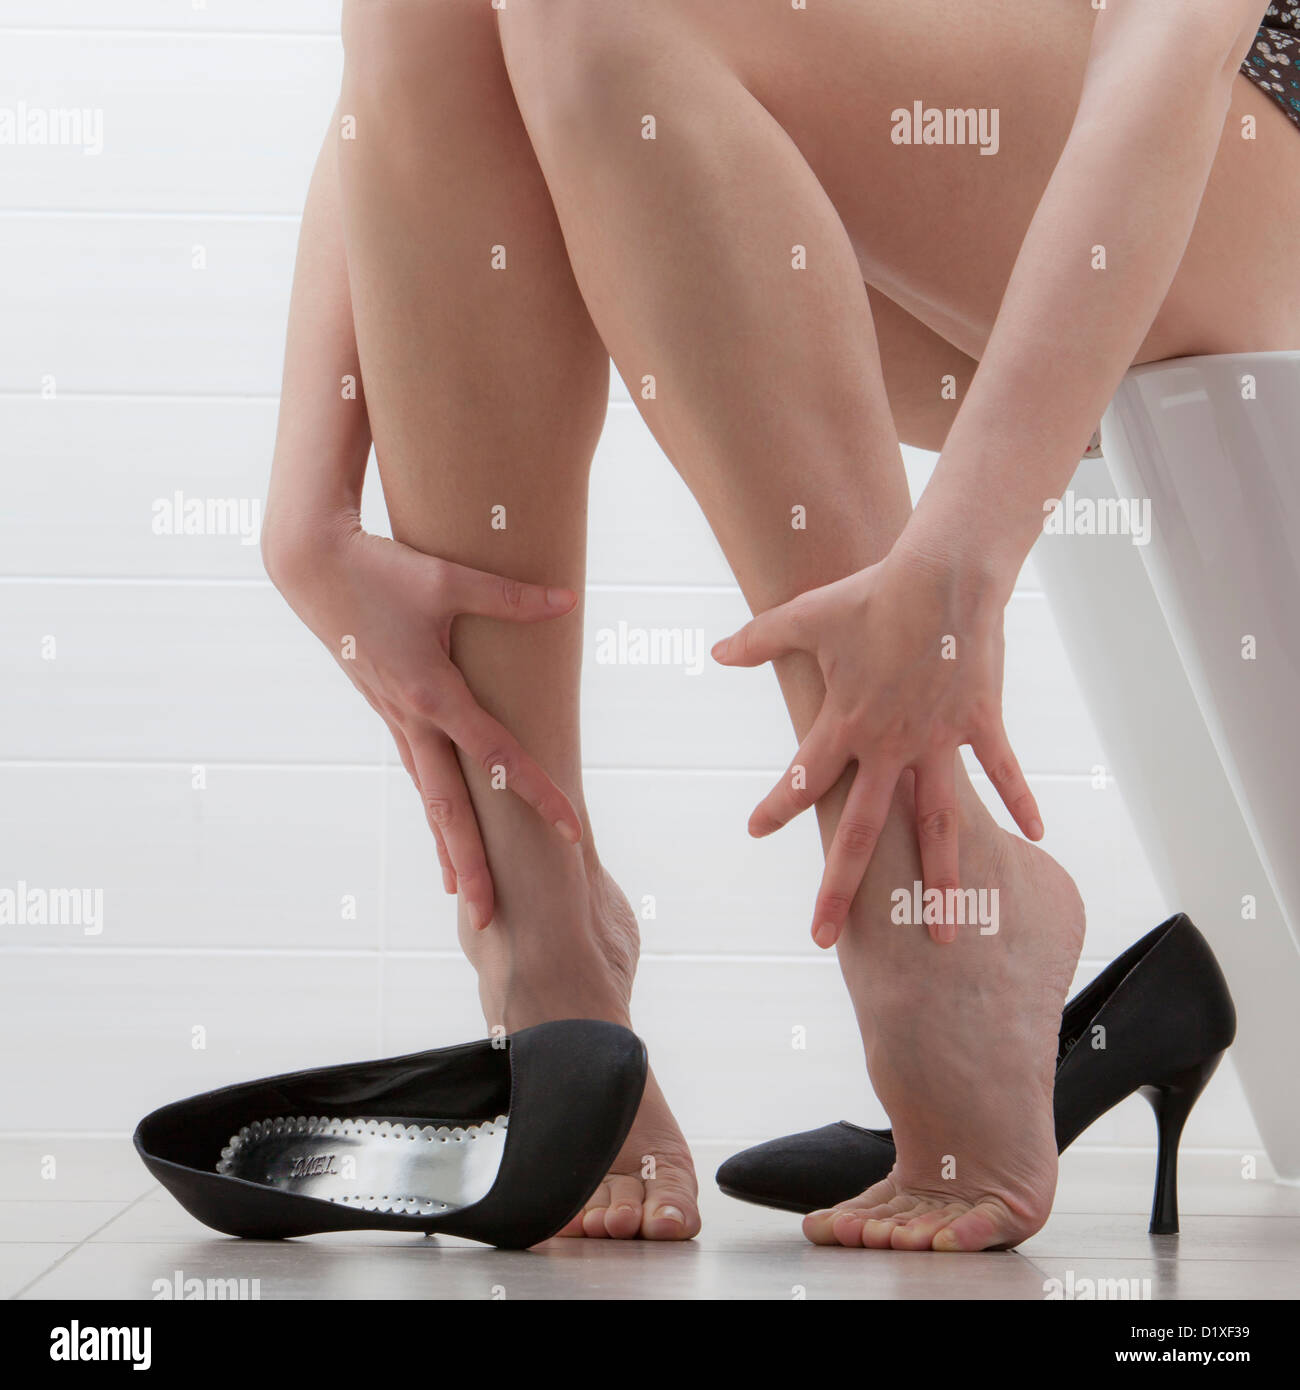 woman sitting without shoes rubs the ankles Stock Photo